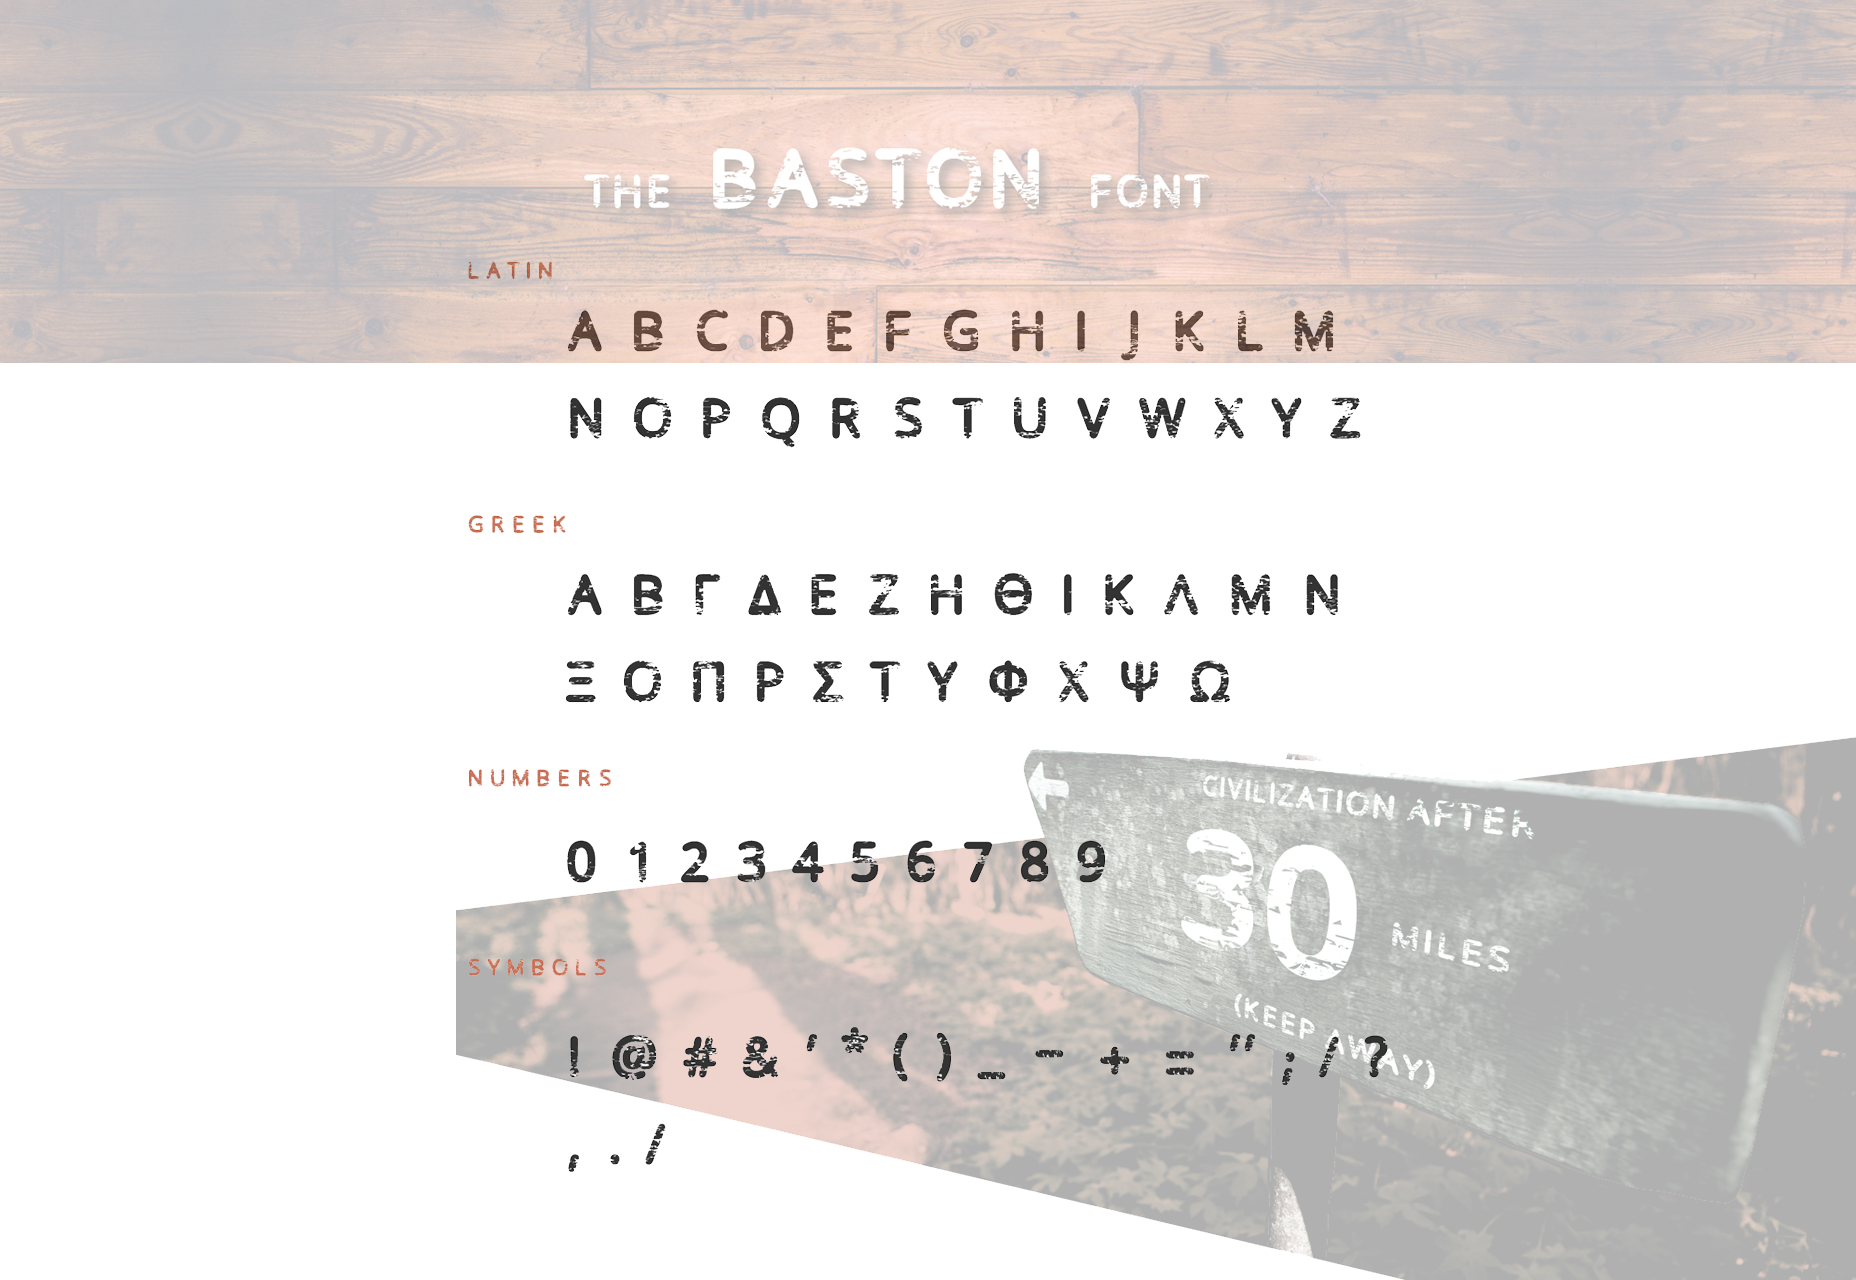 Baston: Cool Worn Away Font